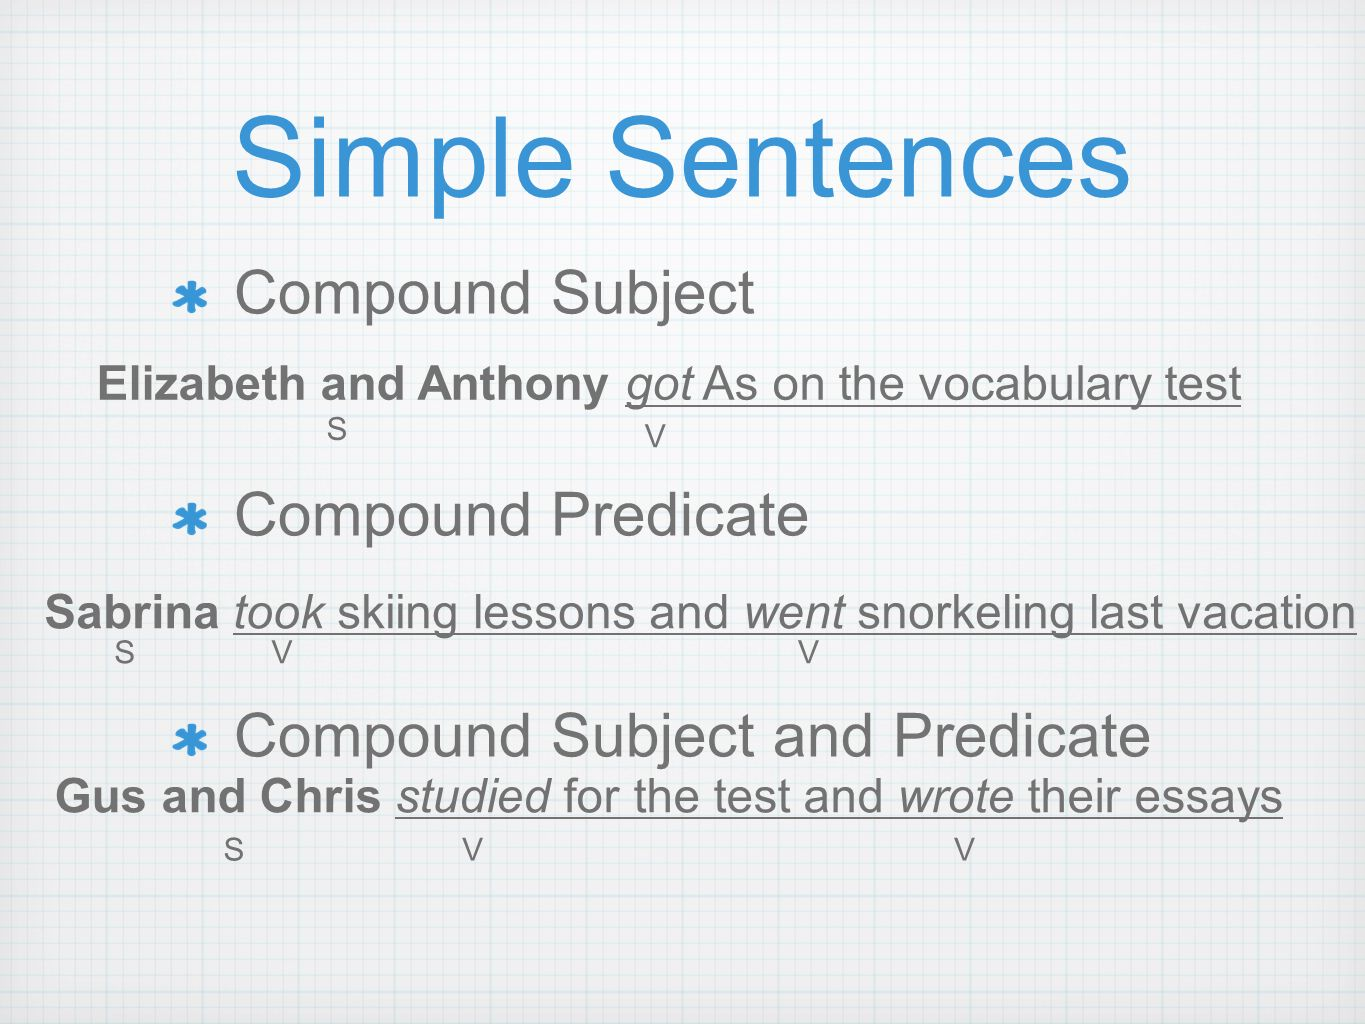 Simple and compound subjects and predicates unit 1.